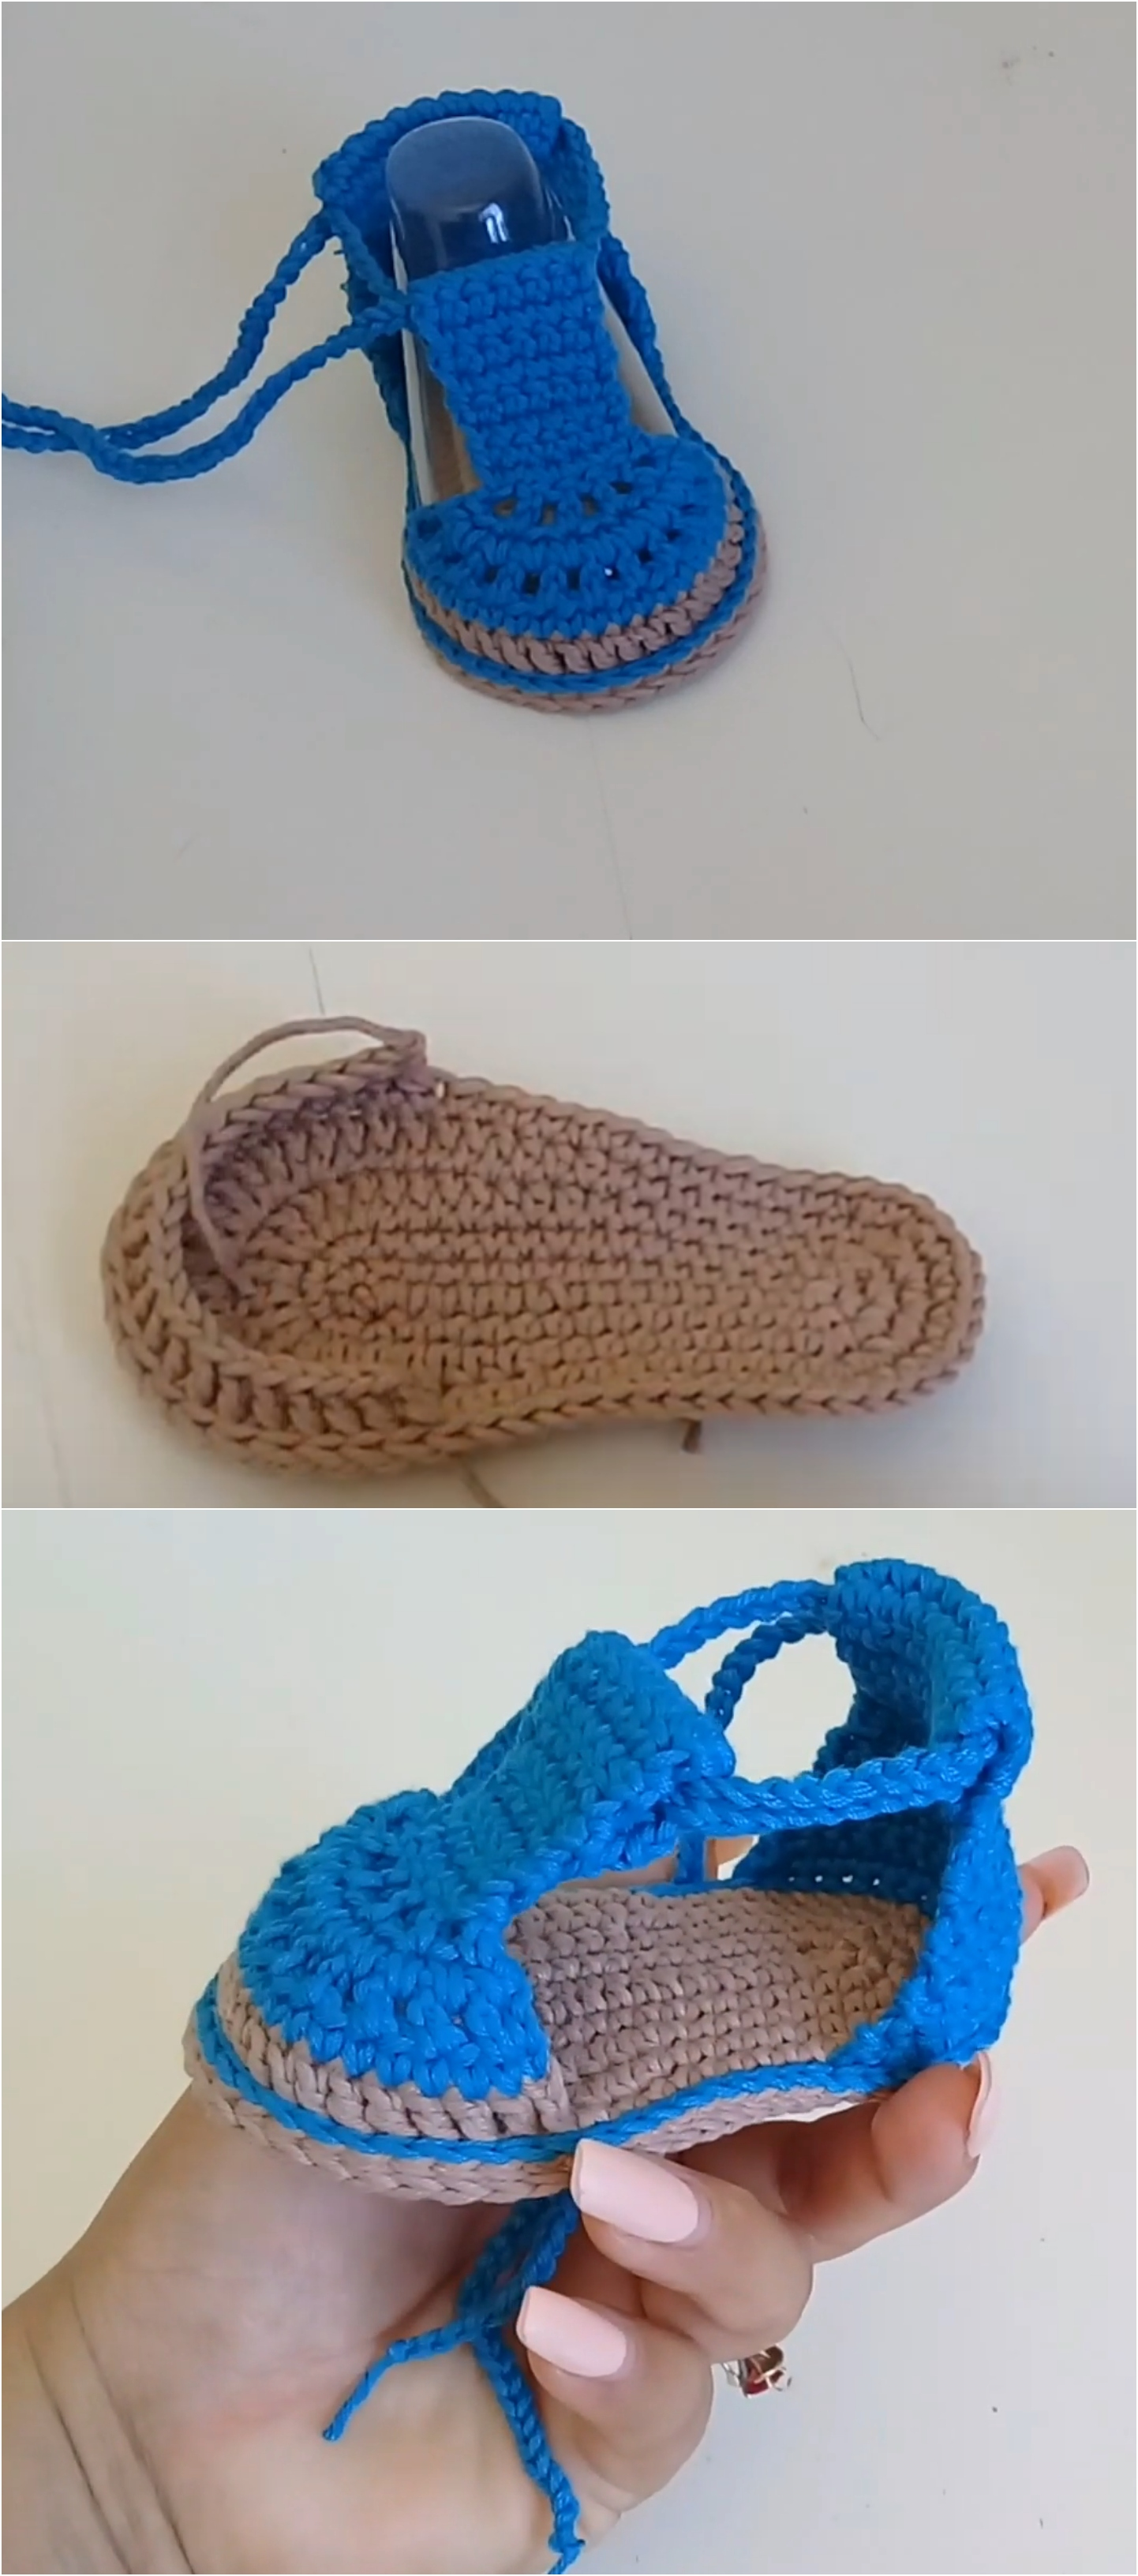 Crochet Baby Shoes (0-3 Months)